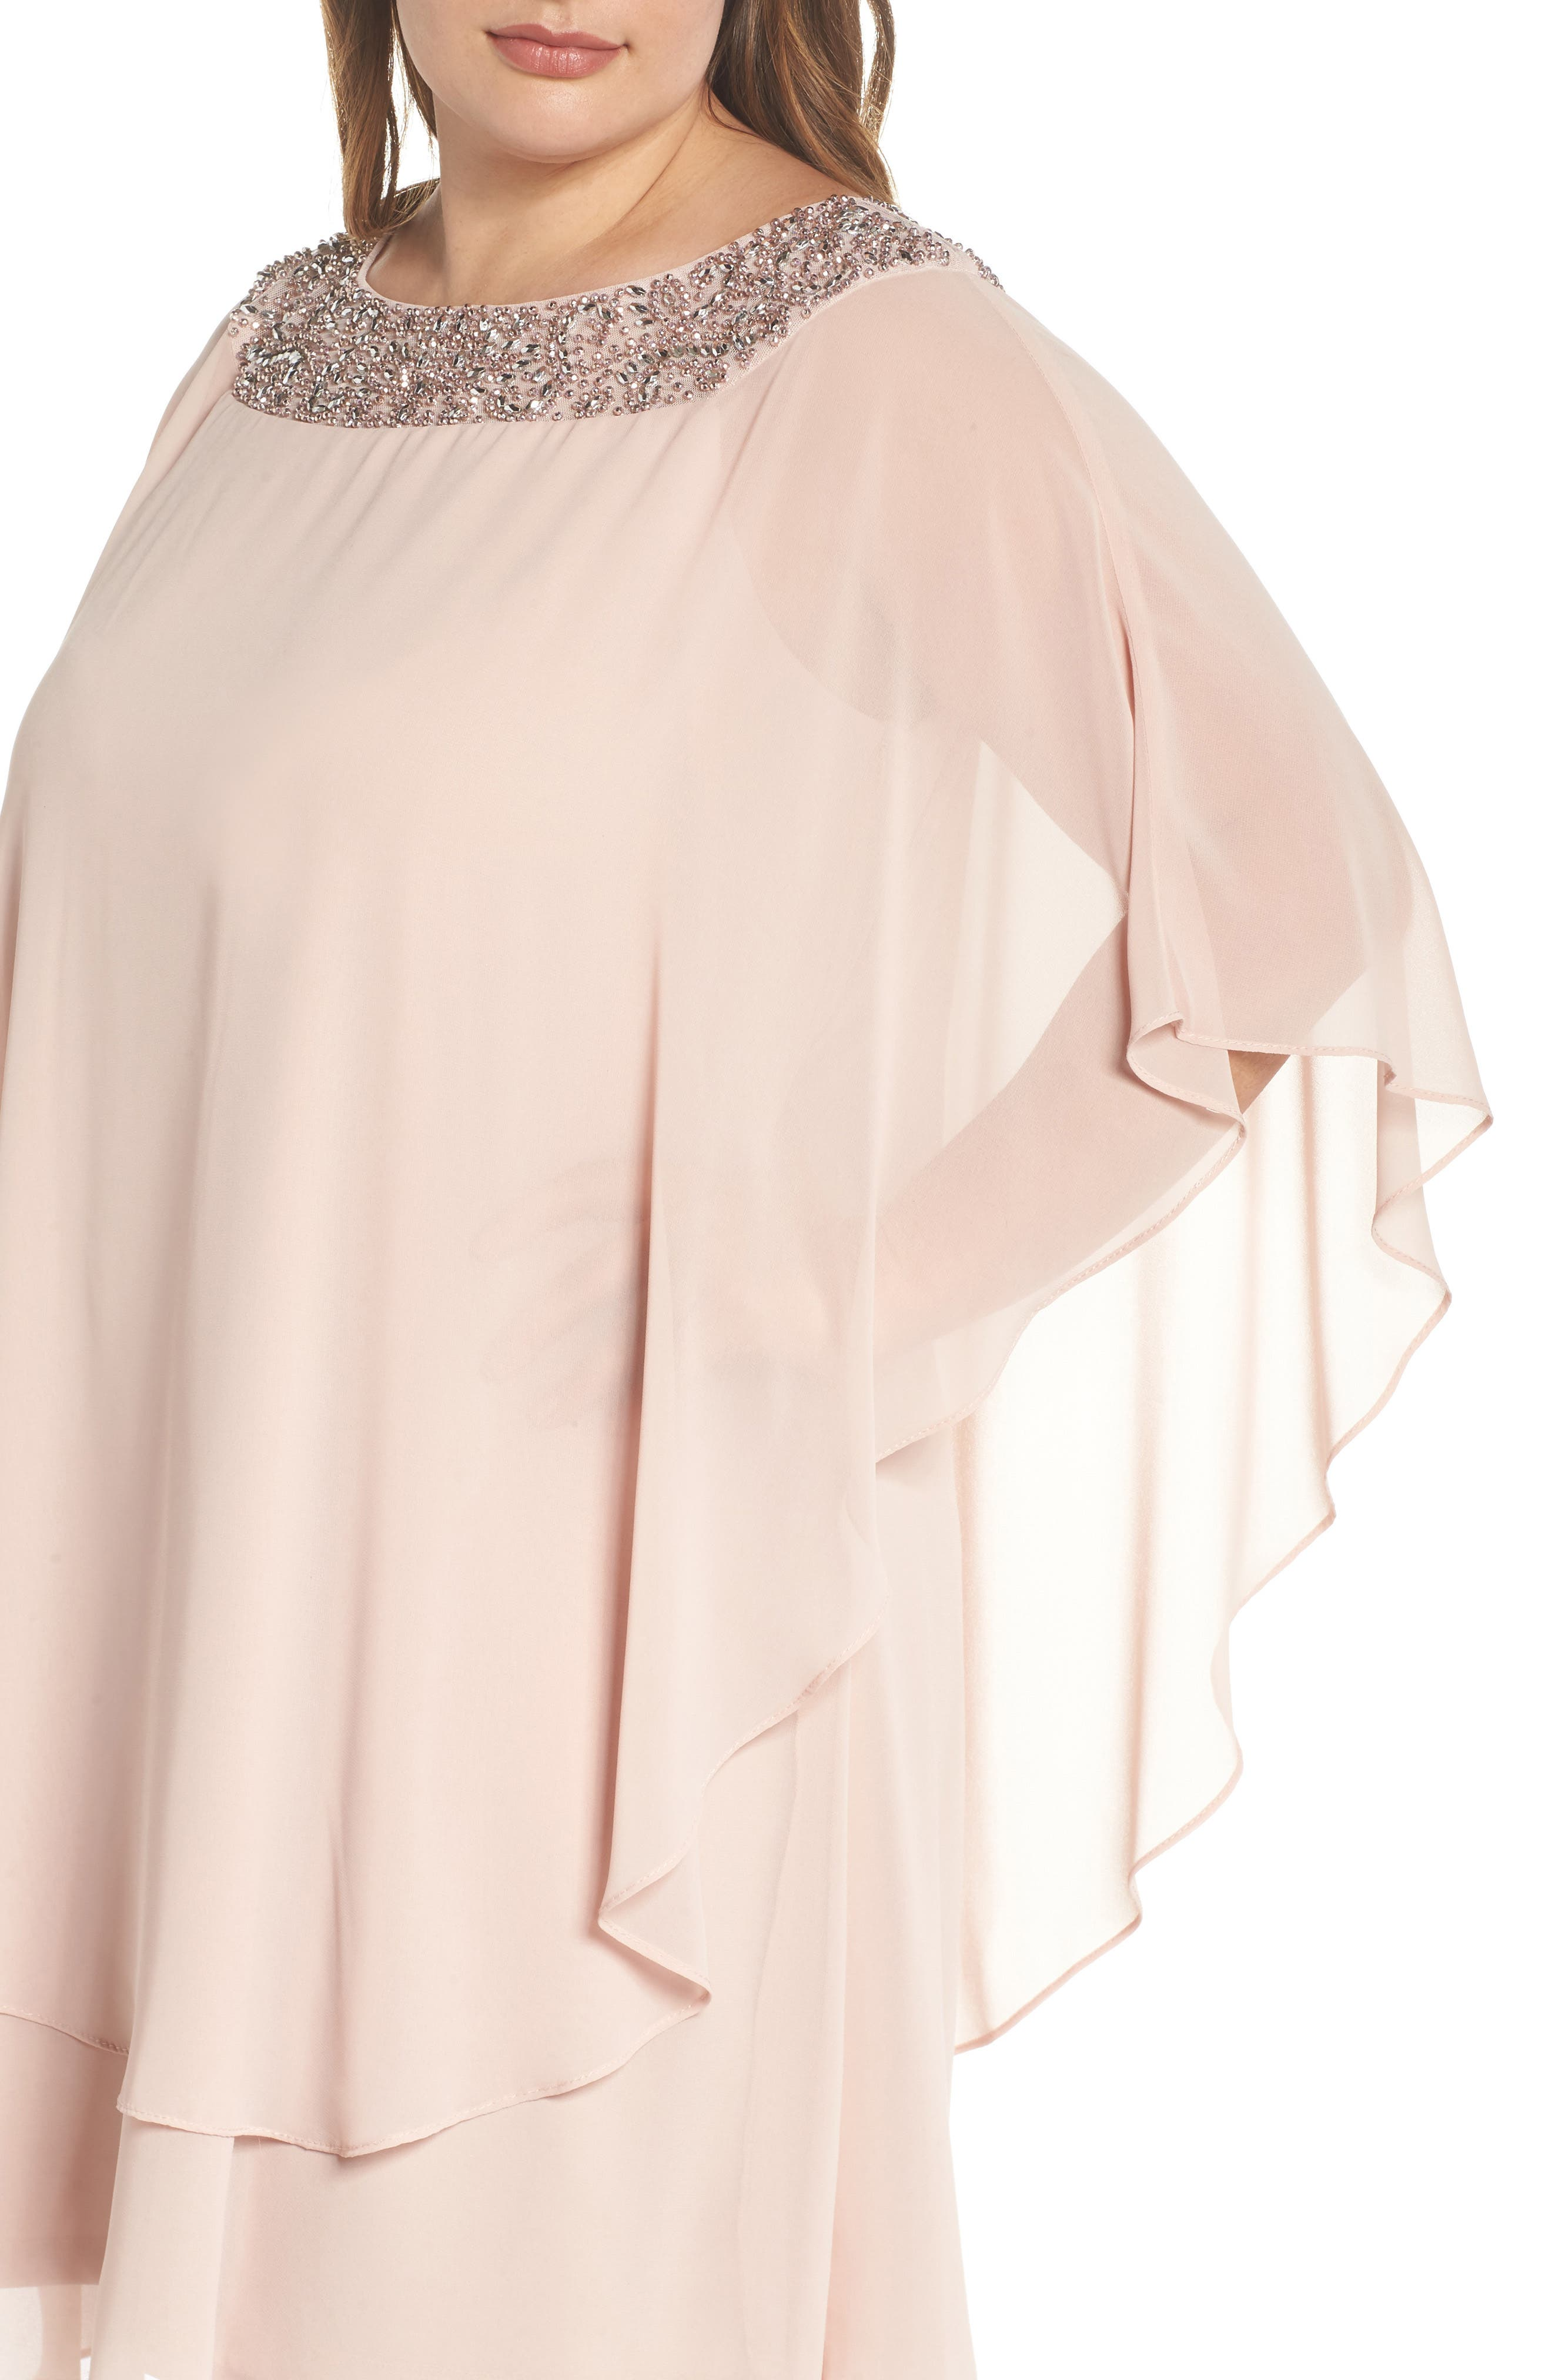 Beaded Neck Chiffon Overlay Dress,                             Alternate thumbnail 4, color,                             Blush/ Silver